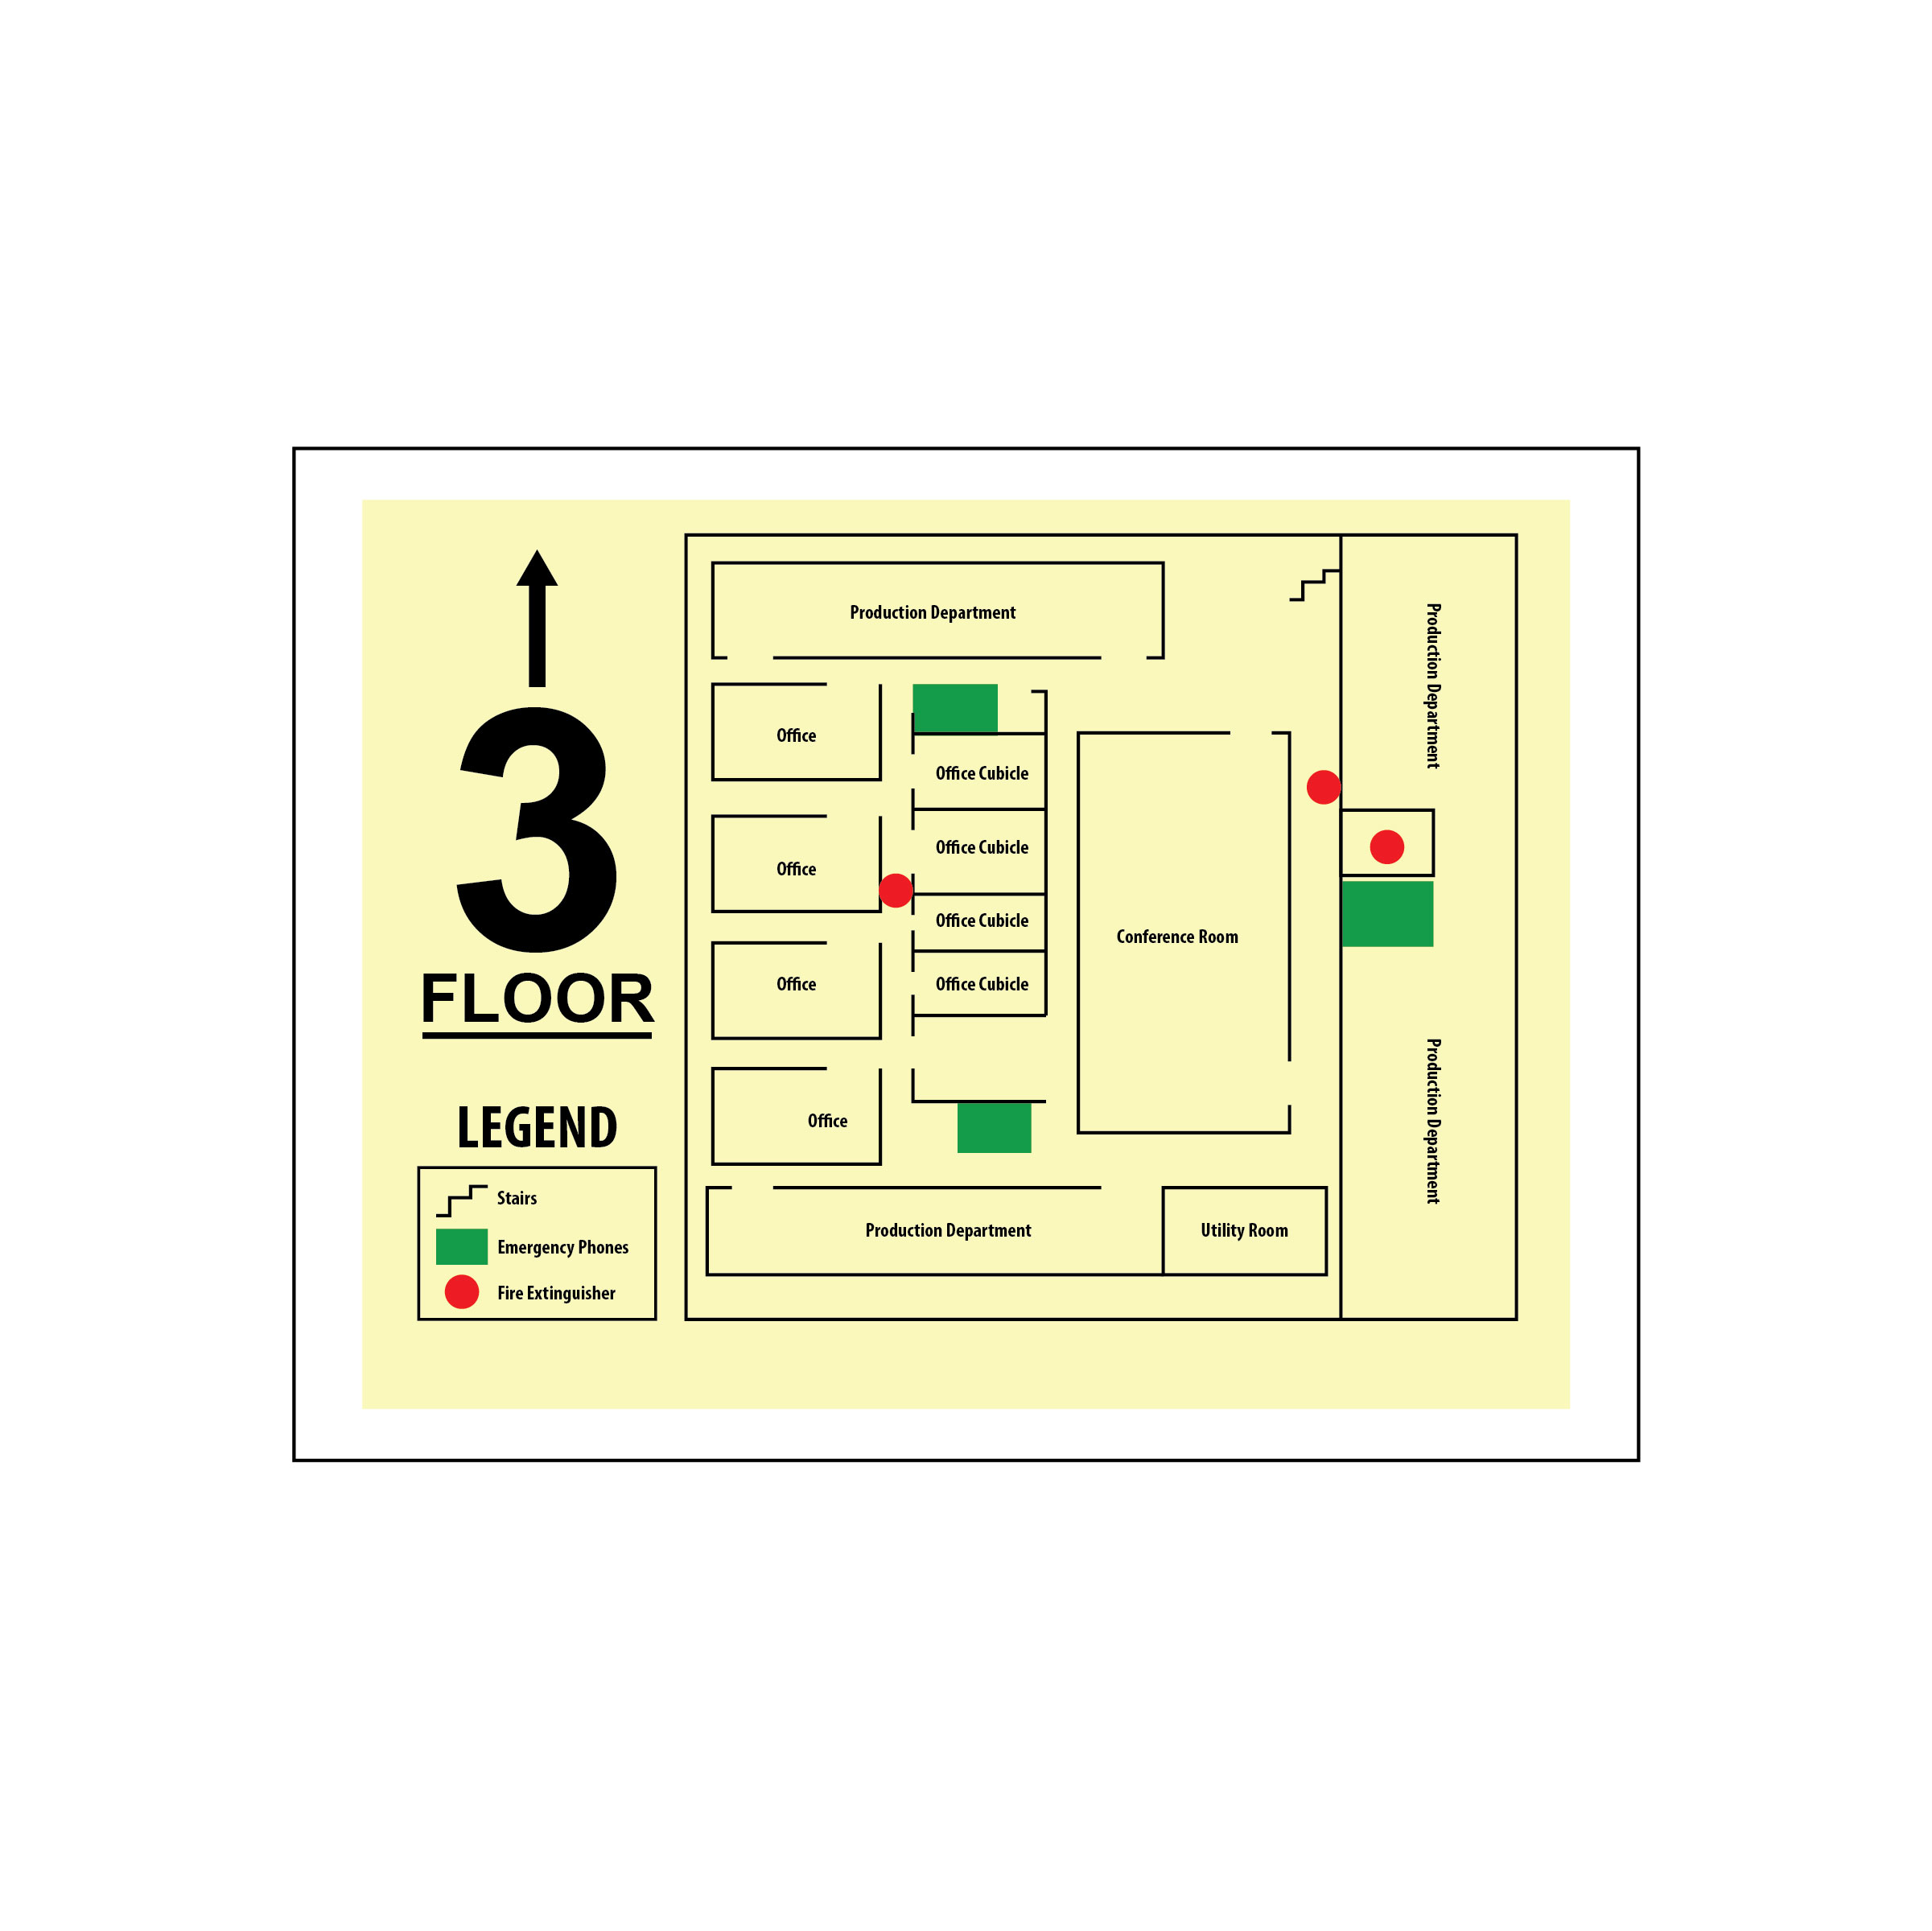 Emergency Floor Plans Image